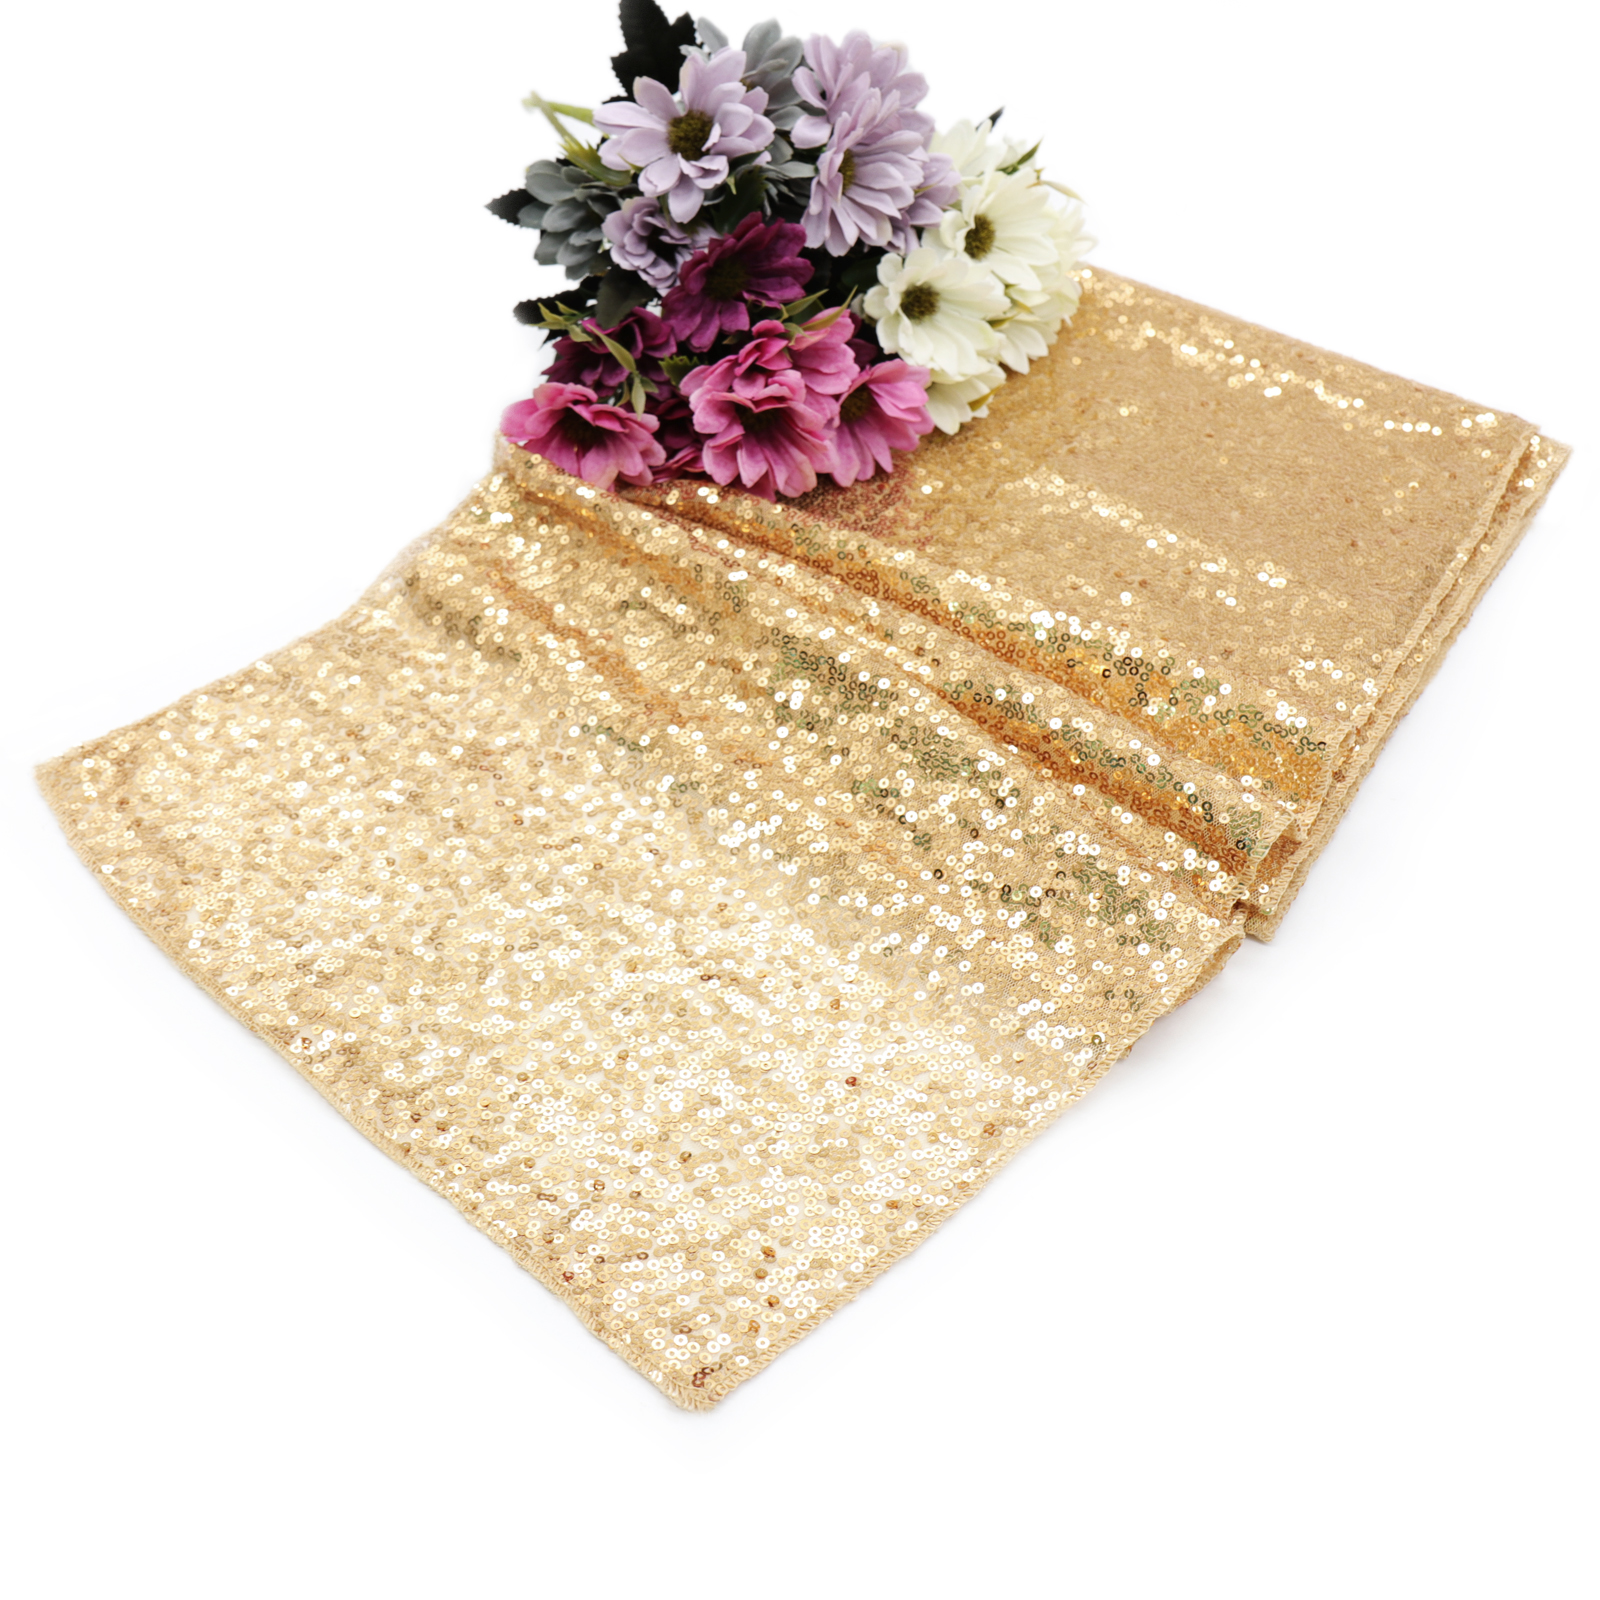 1pcs Rose Gold Champagne Sequin Table Runner Sparkly Wedding Banquet Party Table Runners Home Tablecloth Decoration